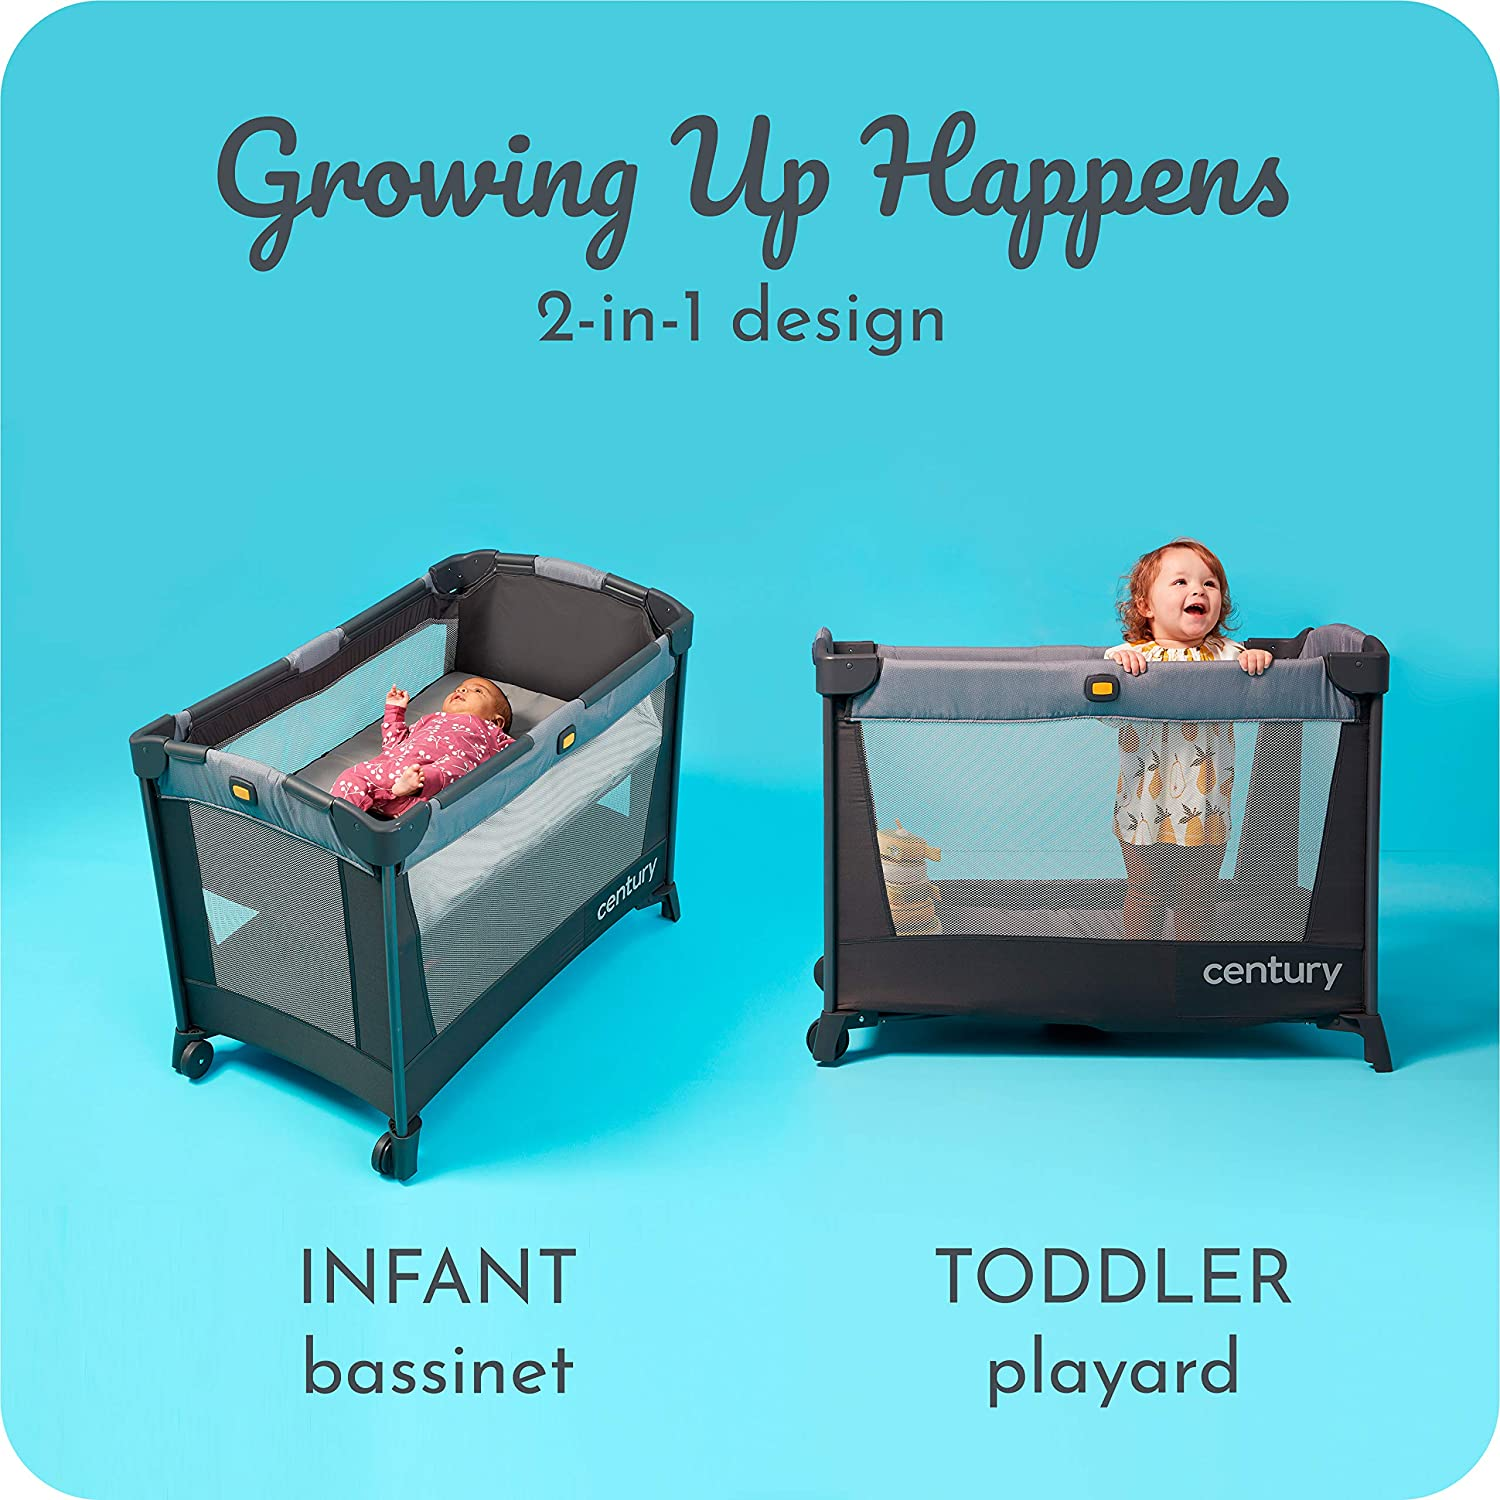 Century Travel On 2-in-1 Compact Playard with Bassinet